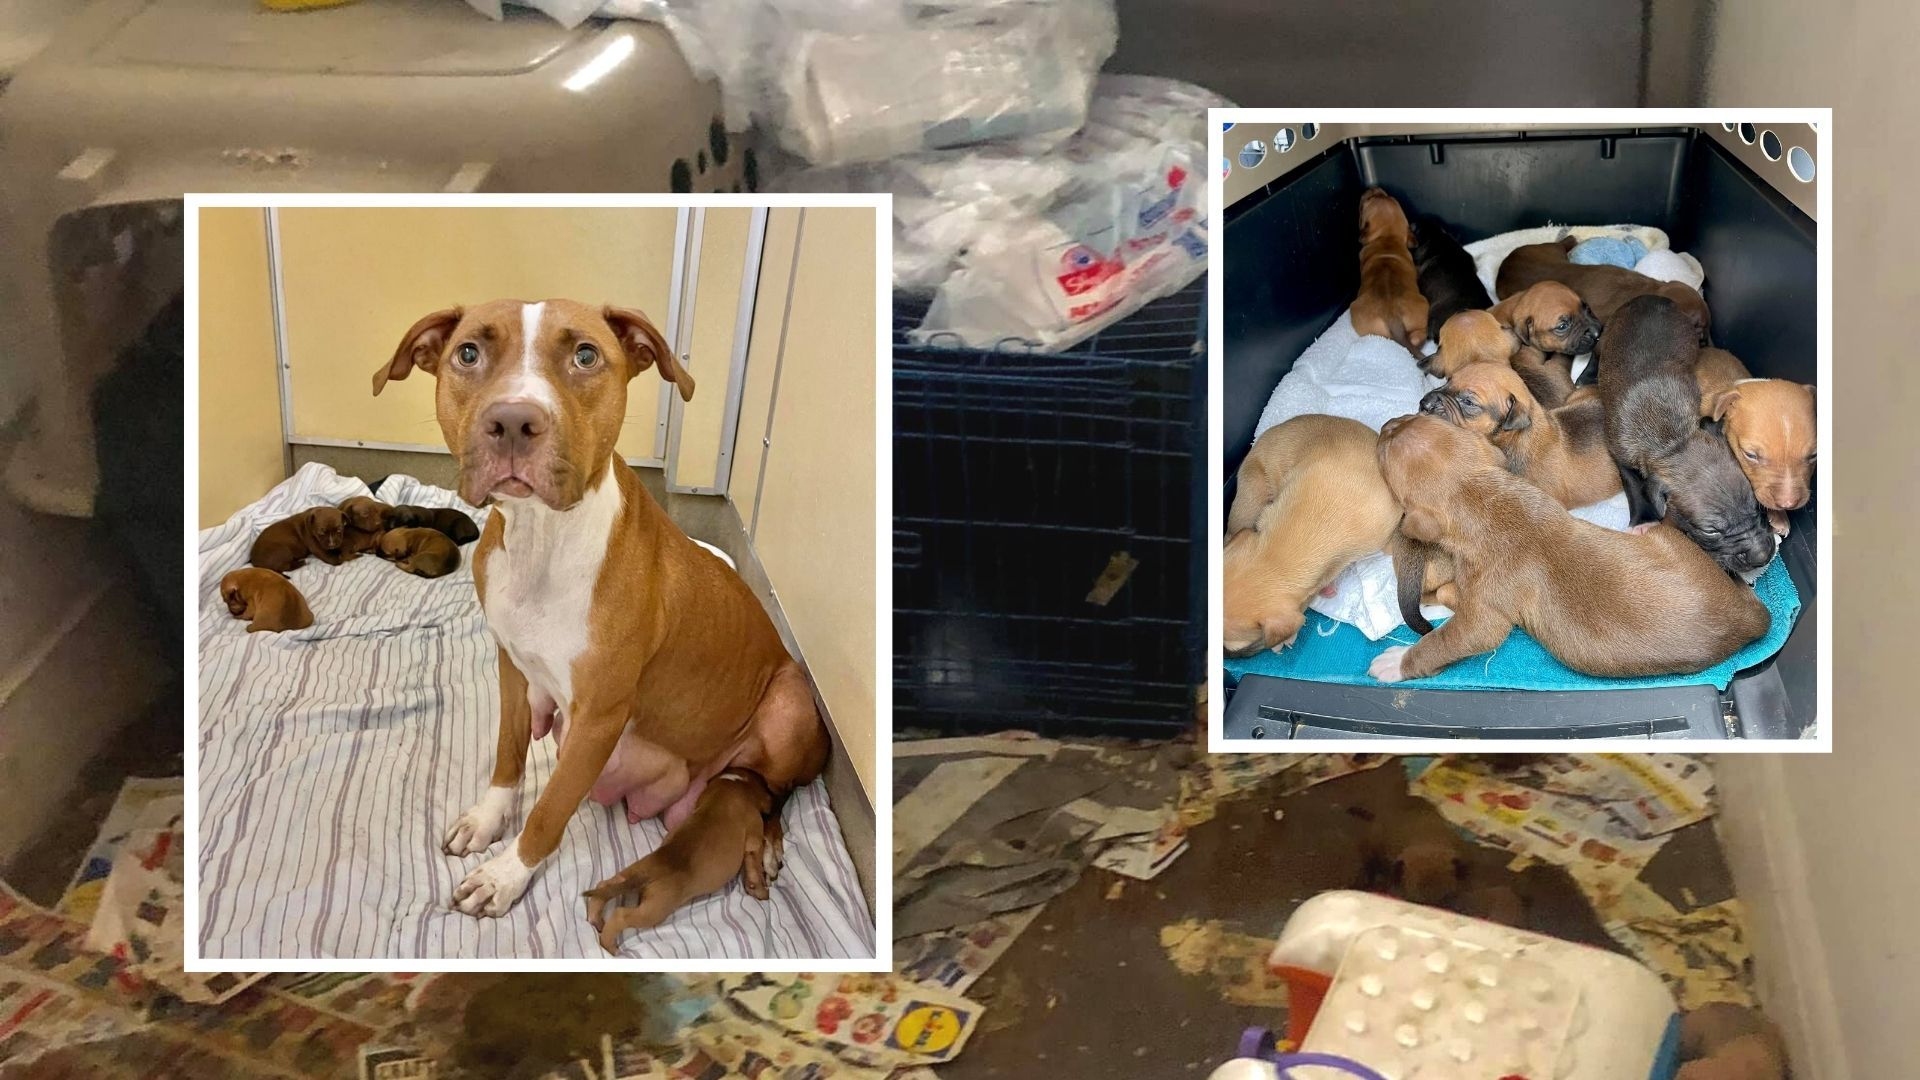 Mom and puppies rescued in Asbury Park